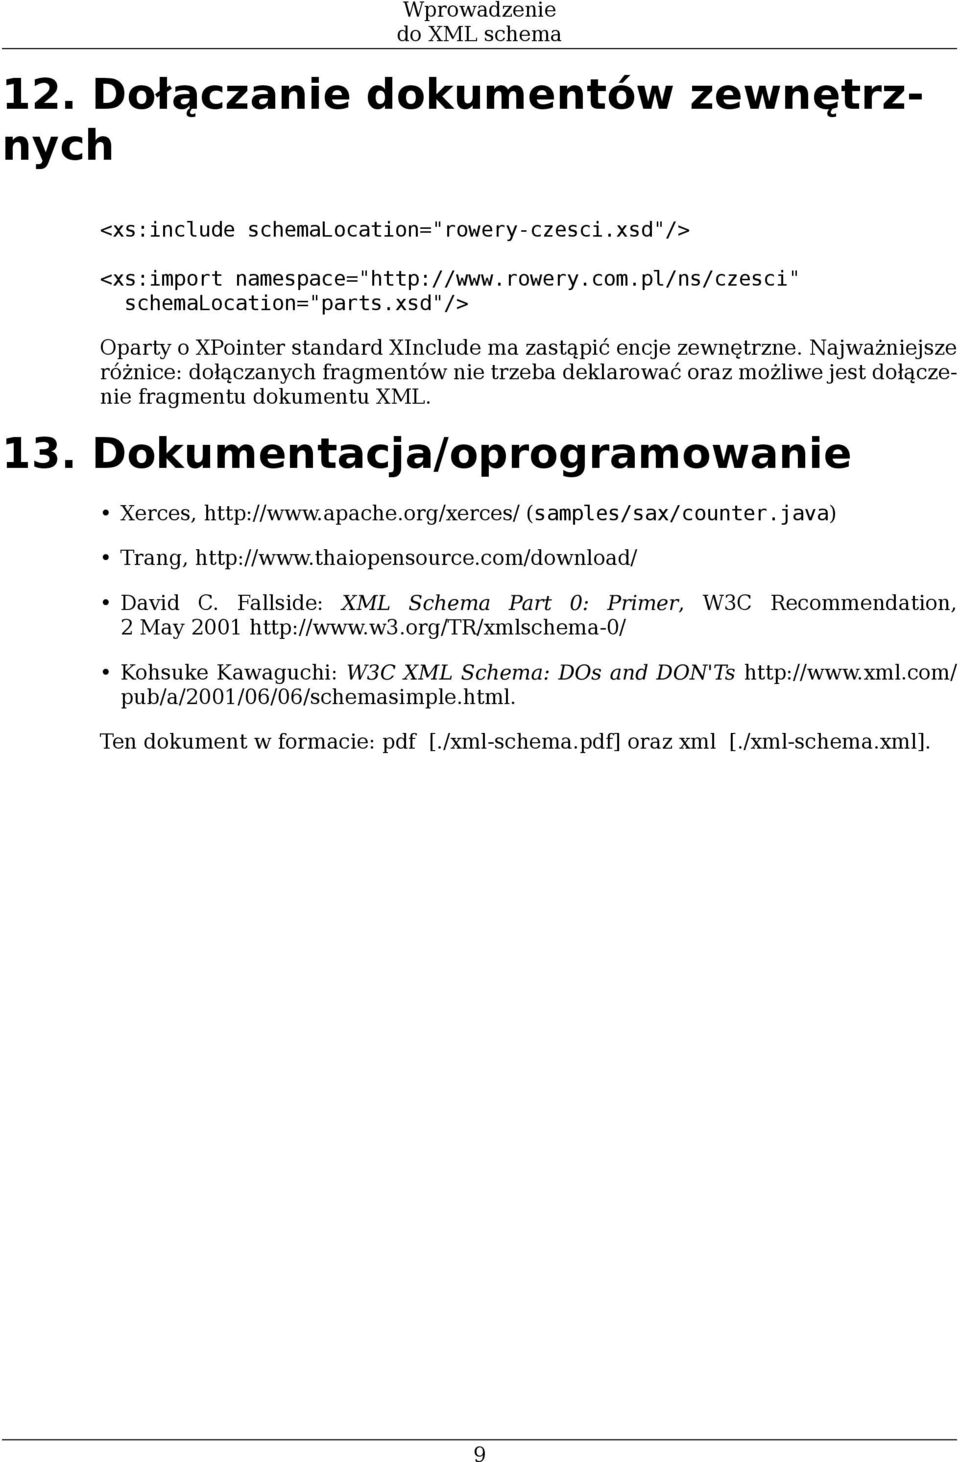 Dokumentacja/oprogramowanie Xerces, http://www.apache.org/xerces/ (samples/sax/counter.java) Trang, http://www.thaiopensource.com/download/ David C.